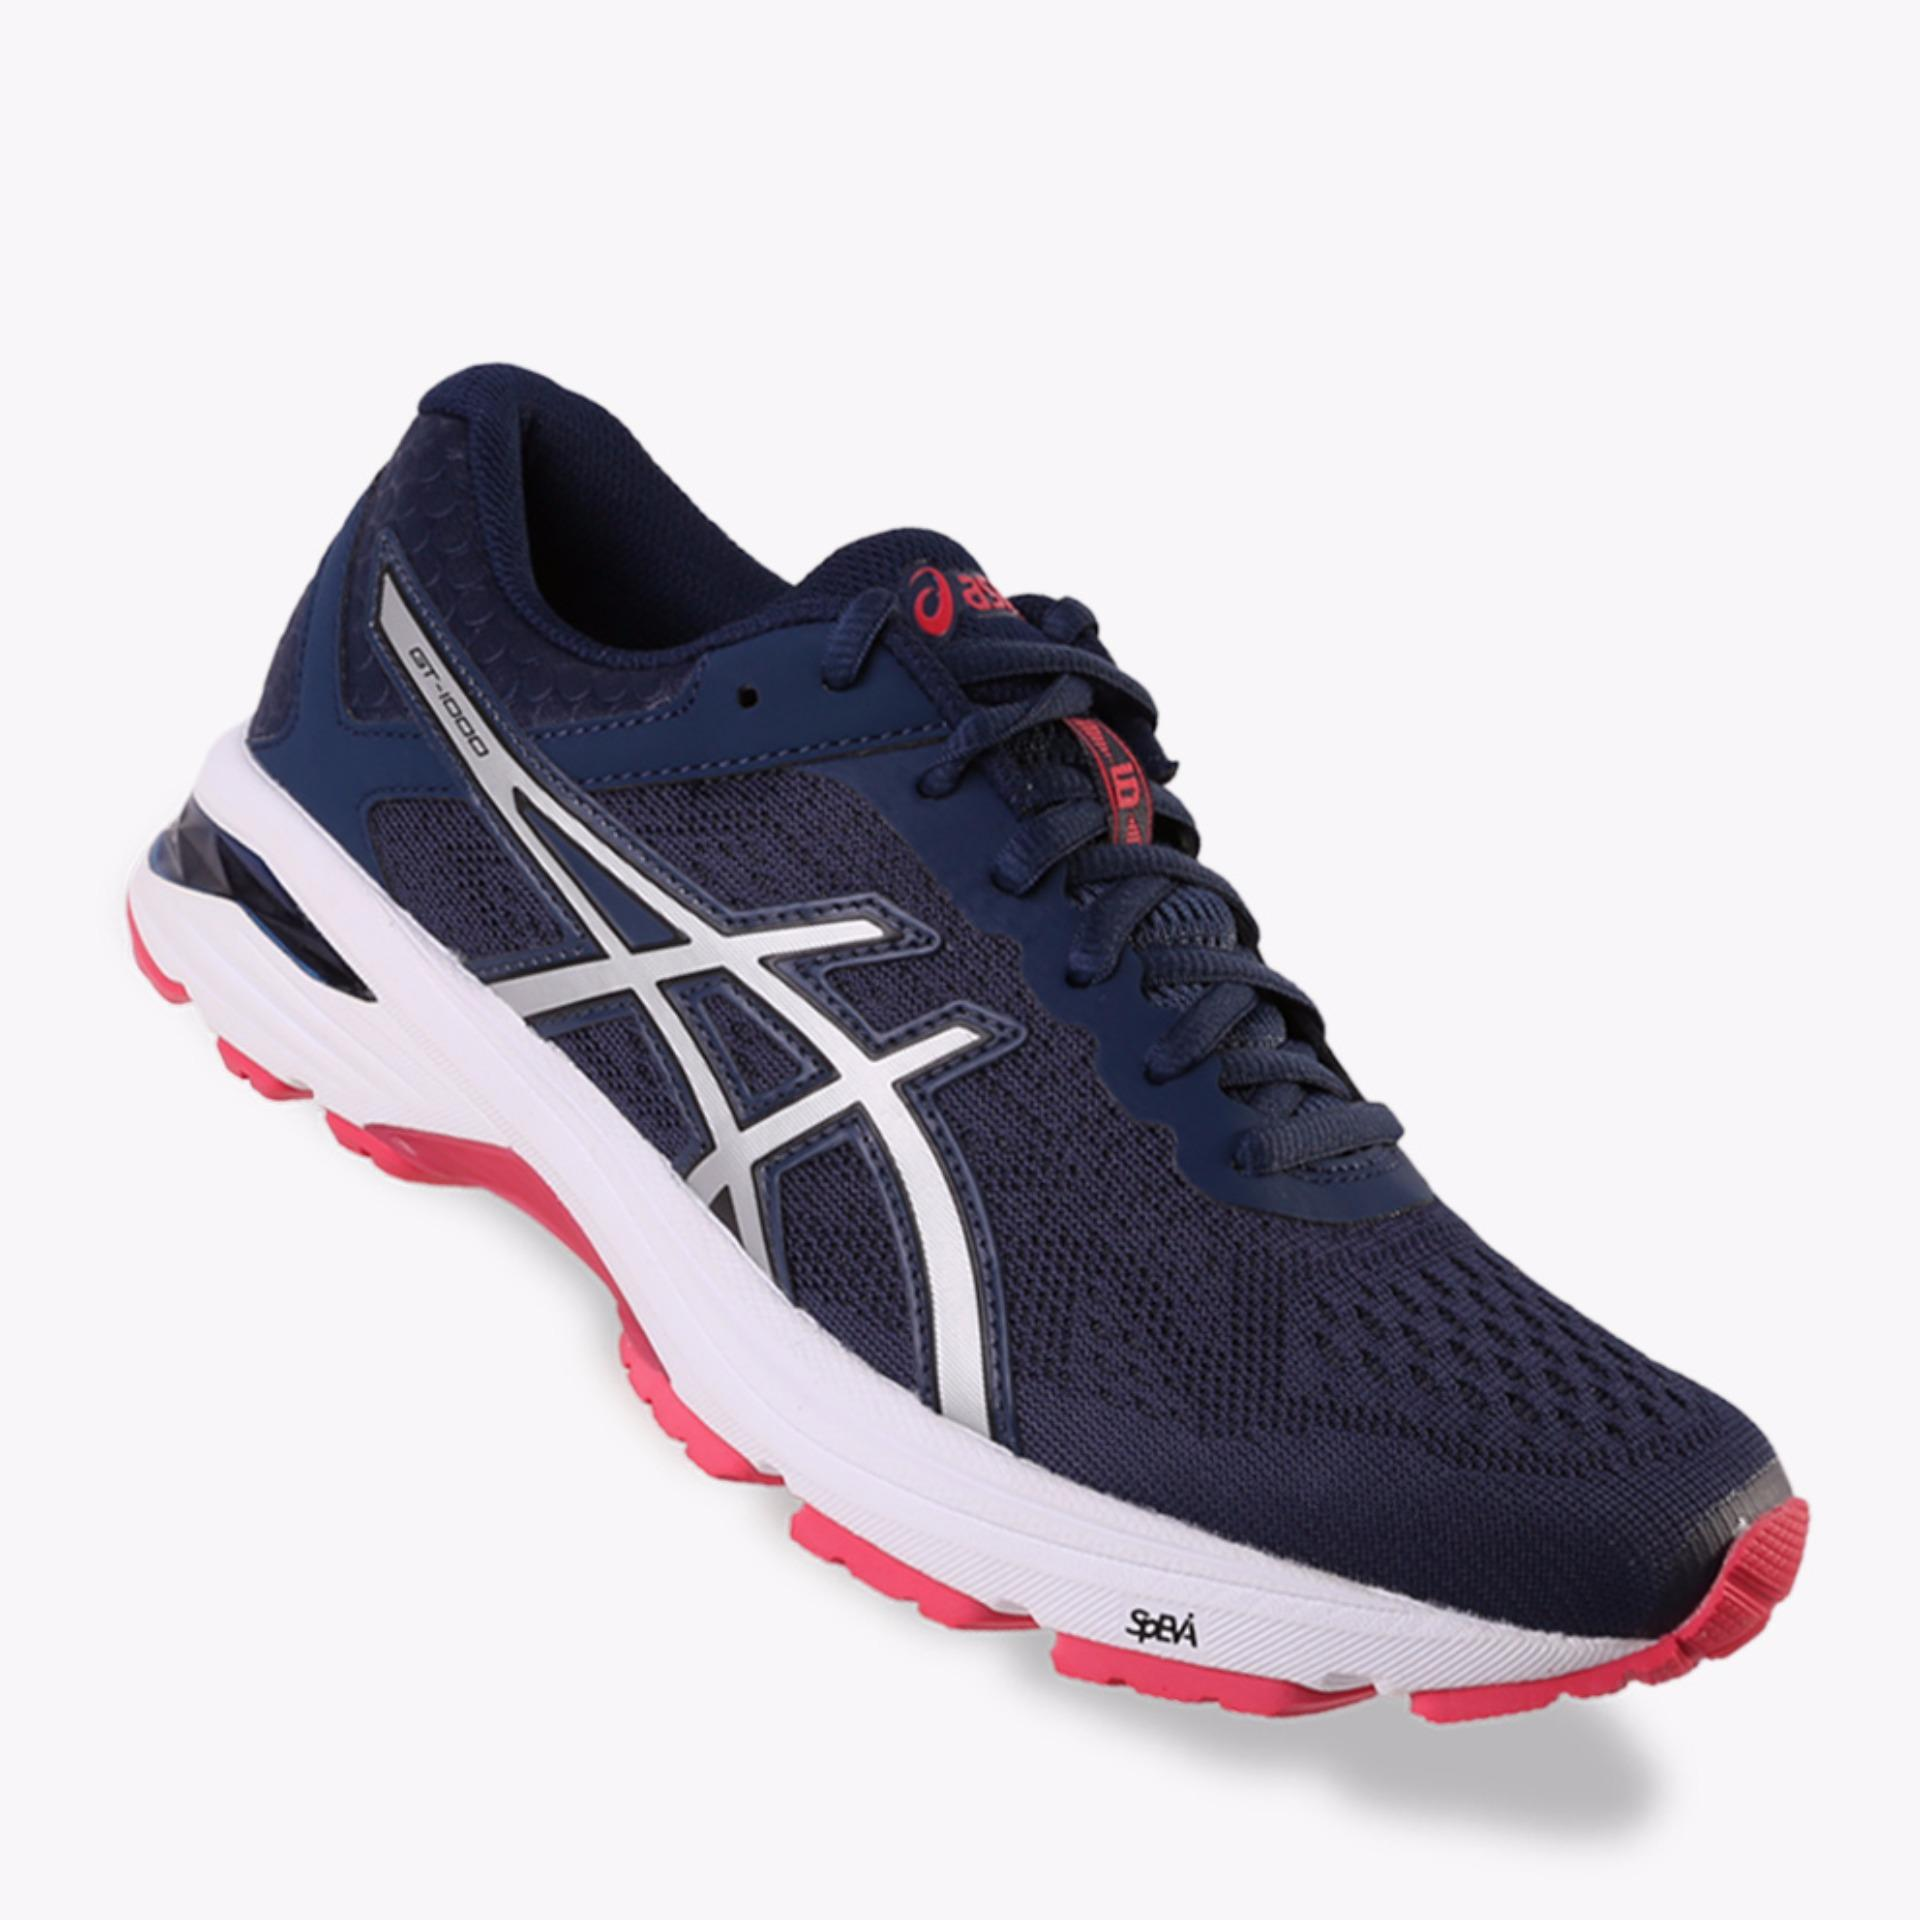 Beli Asics Gt 1000 6 Women S Running Shoes Standard Wide Navy Murah Di Indonesia